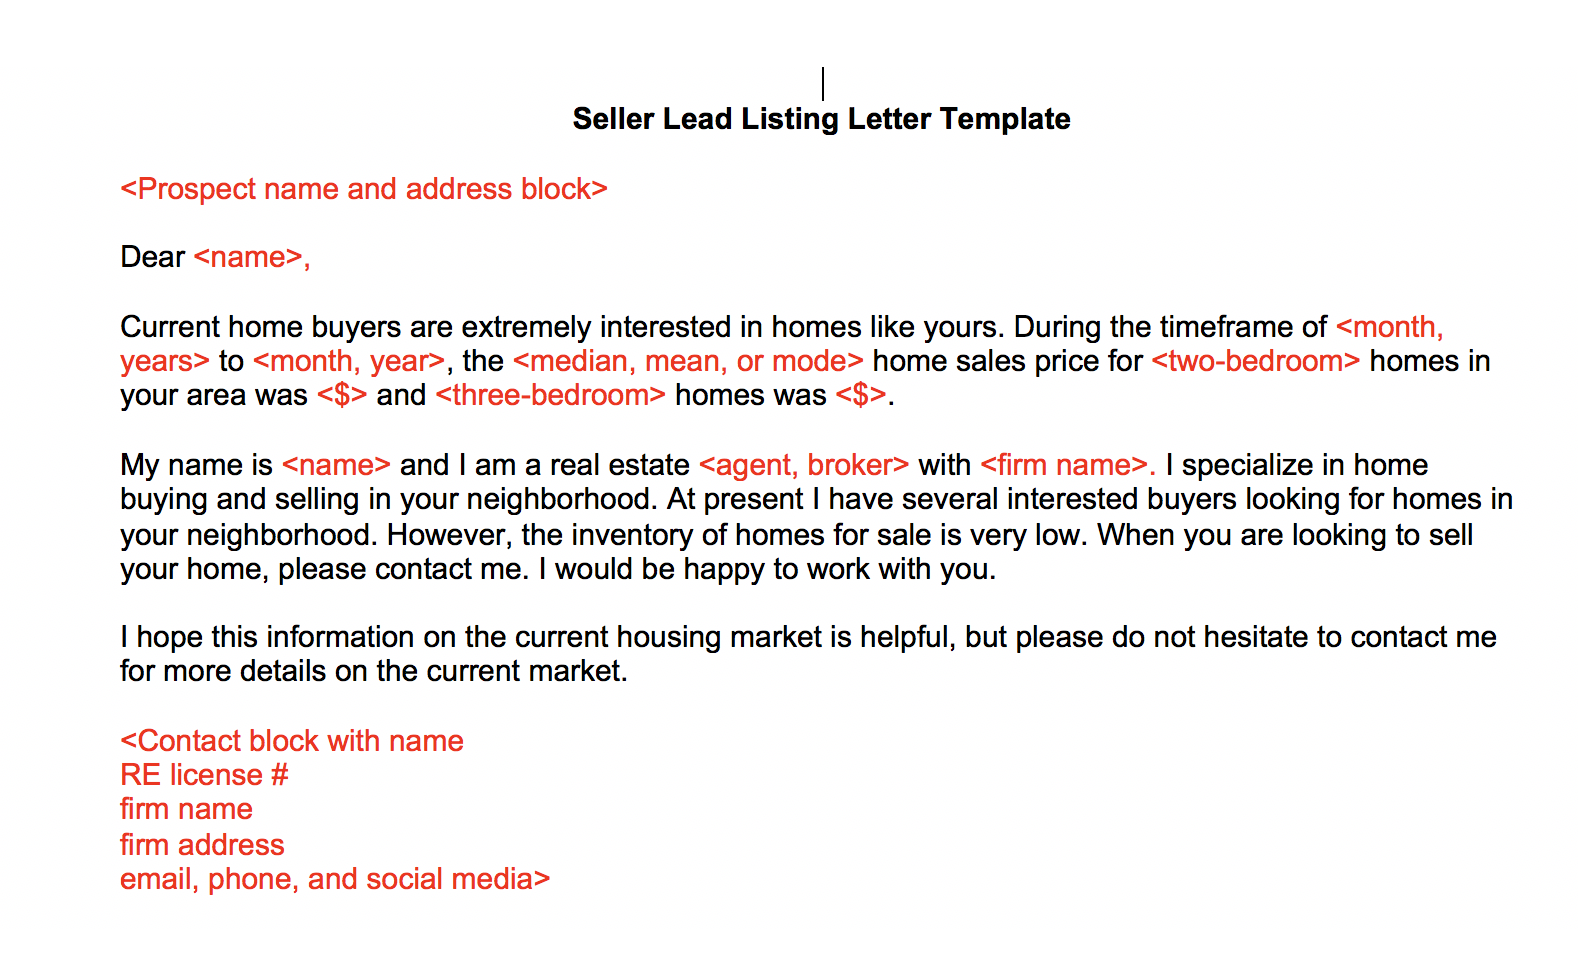 Letters From Real Estate Agents St Paul Real Estate Blog